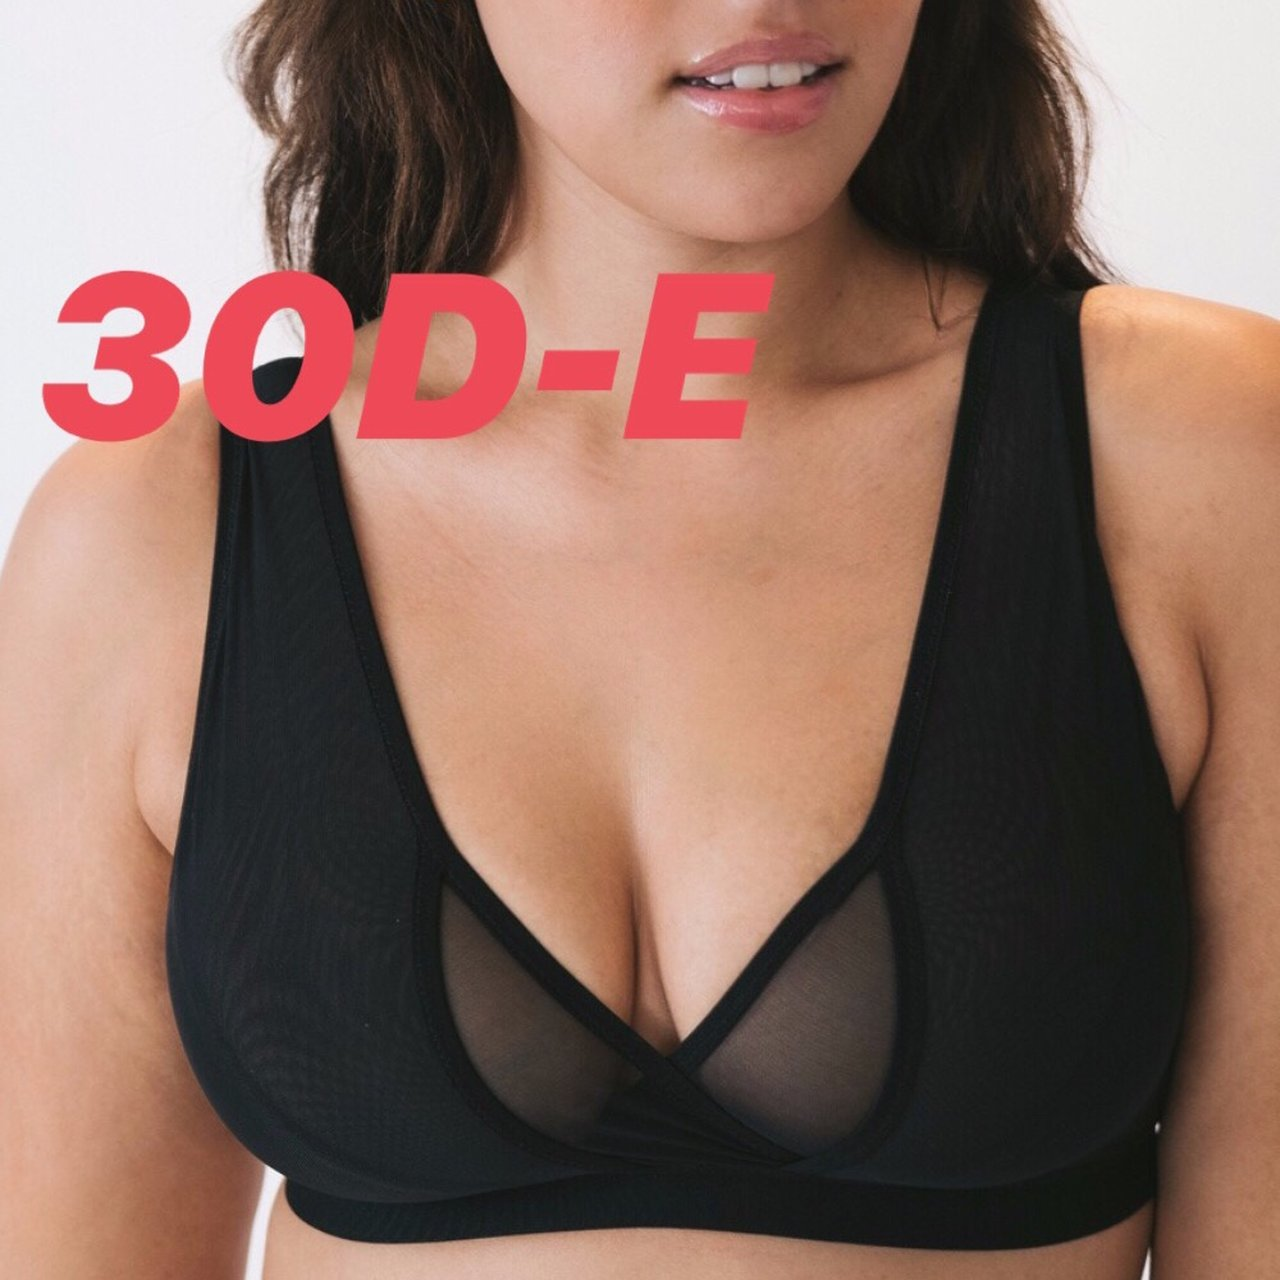 c67b440e54 WREN BRA - BLACK - 34F This wireless mesh bra is made from a - Depop